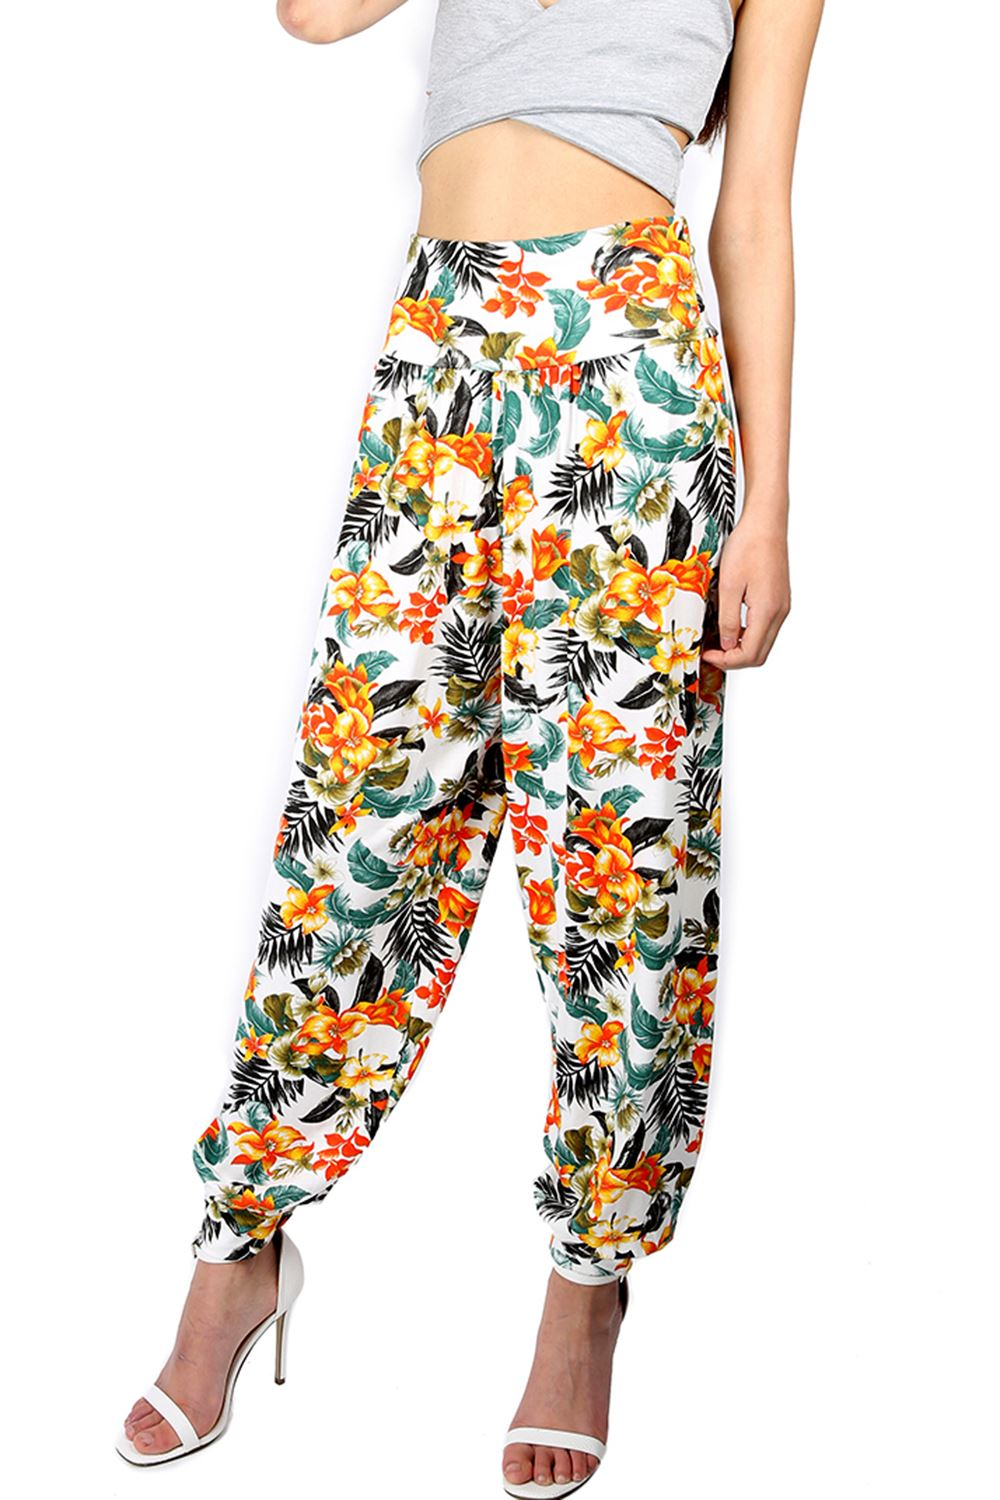 Excellent Womens Printed Harem Pants Cuffed Bottom Ladies Ali Baba Trousers Plus Size 8